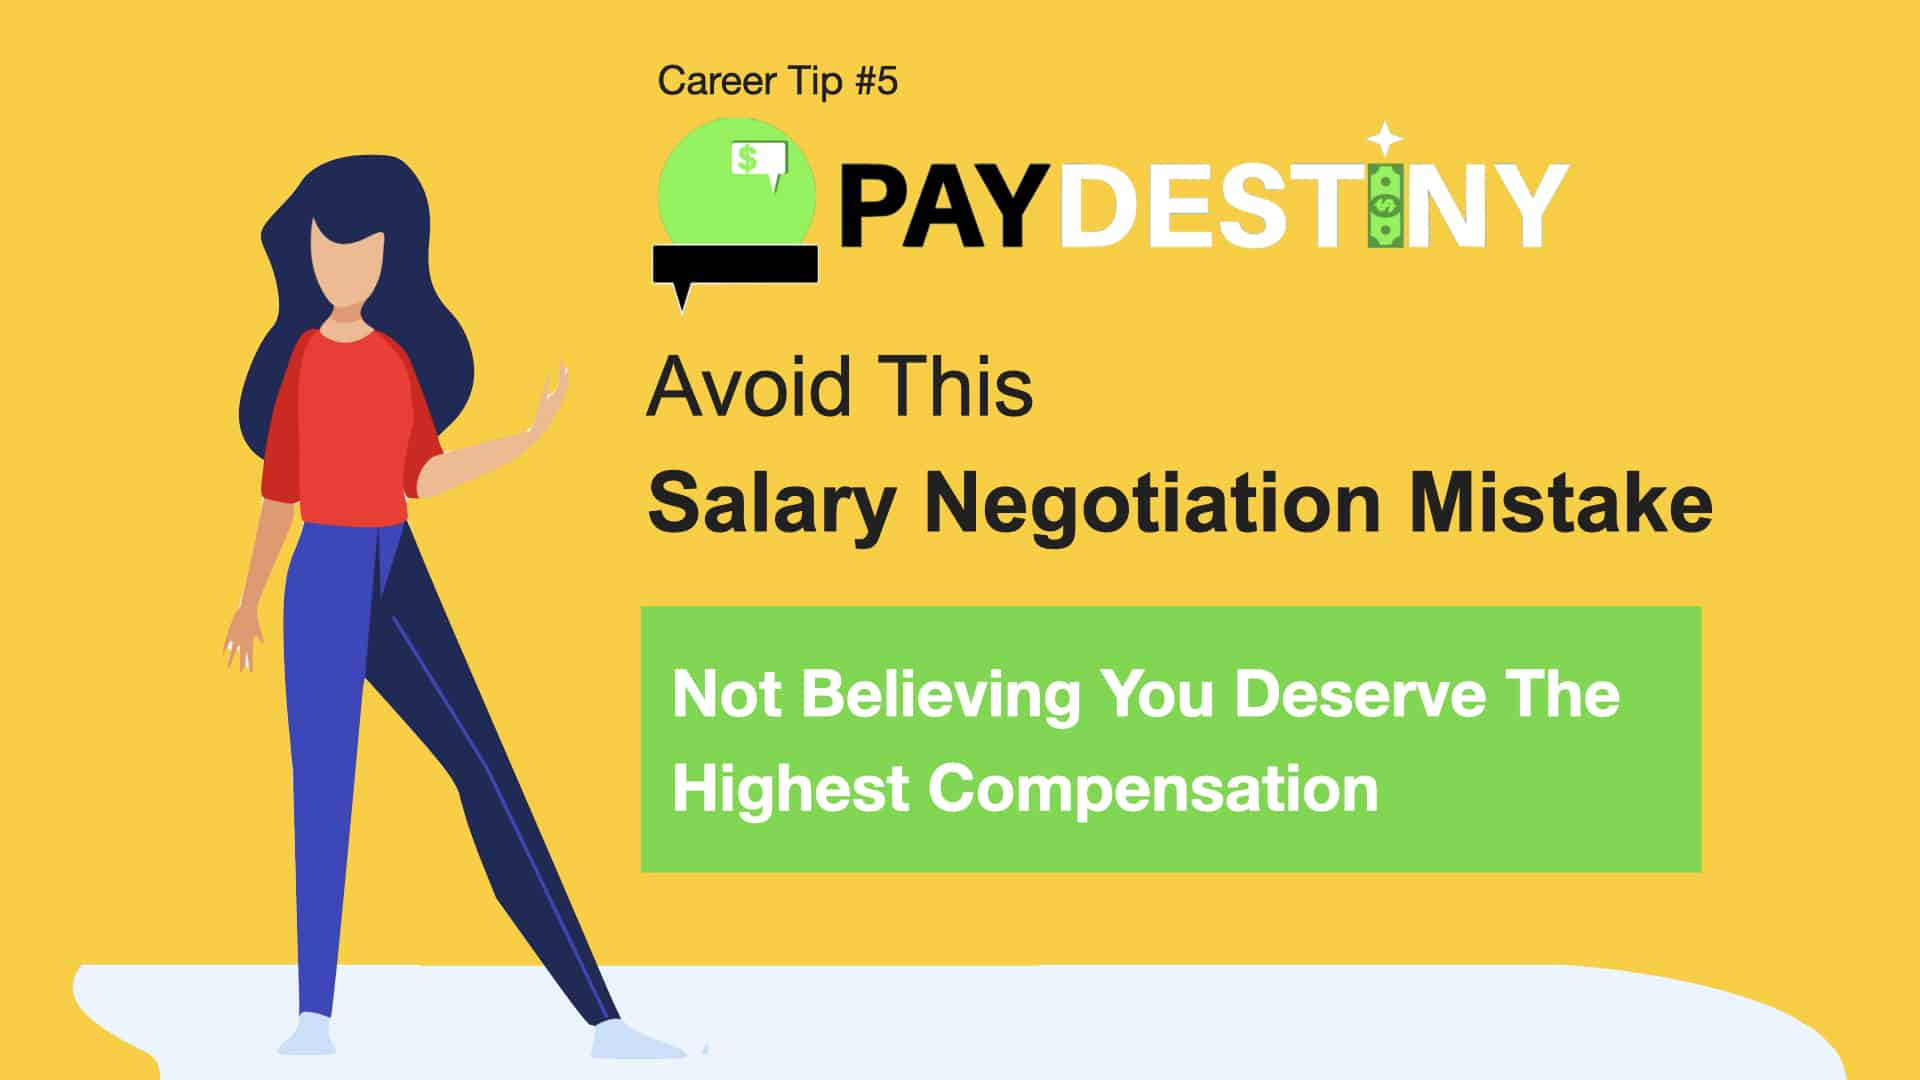 Salary Negotiation Mistake (Not Believing You Deserve the Highest Compensation Possible)